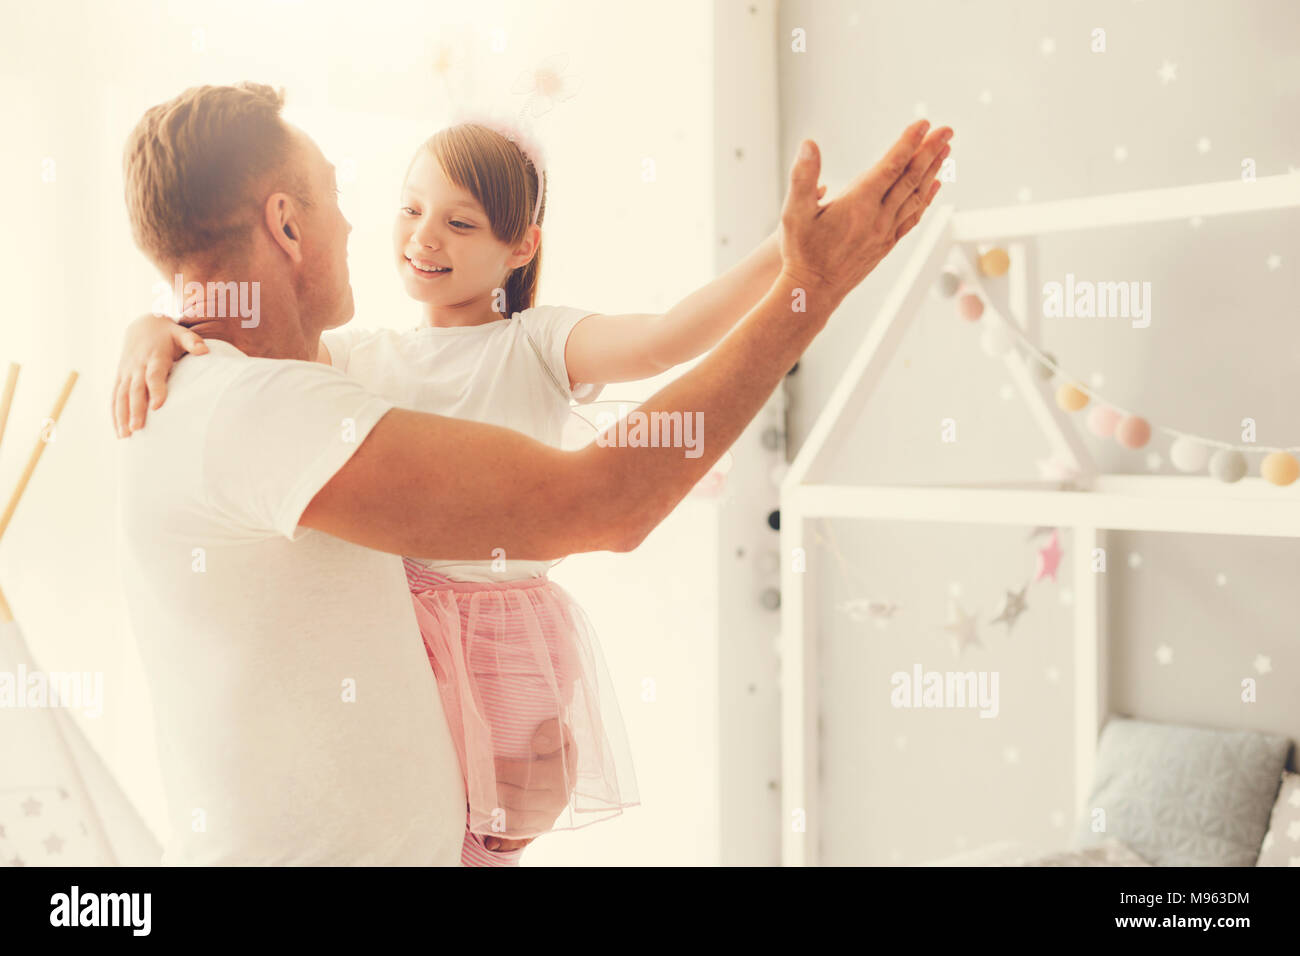 Cute happy girl dancing with her father - Stock Image